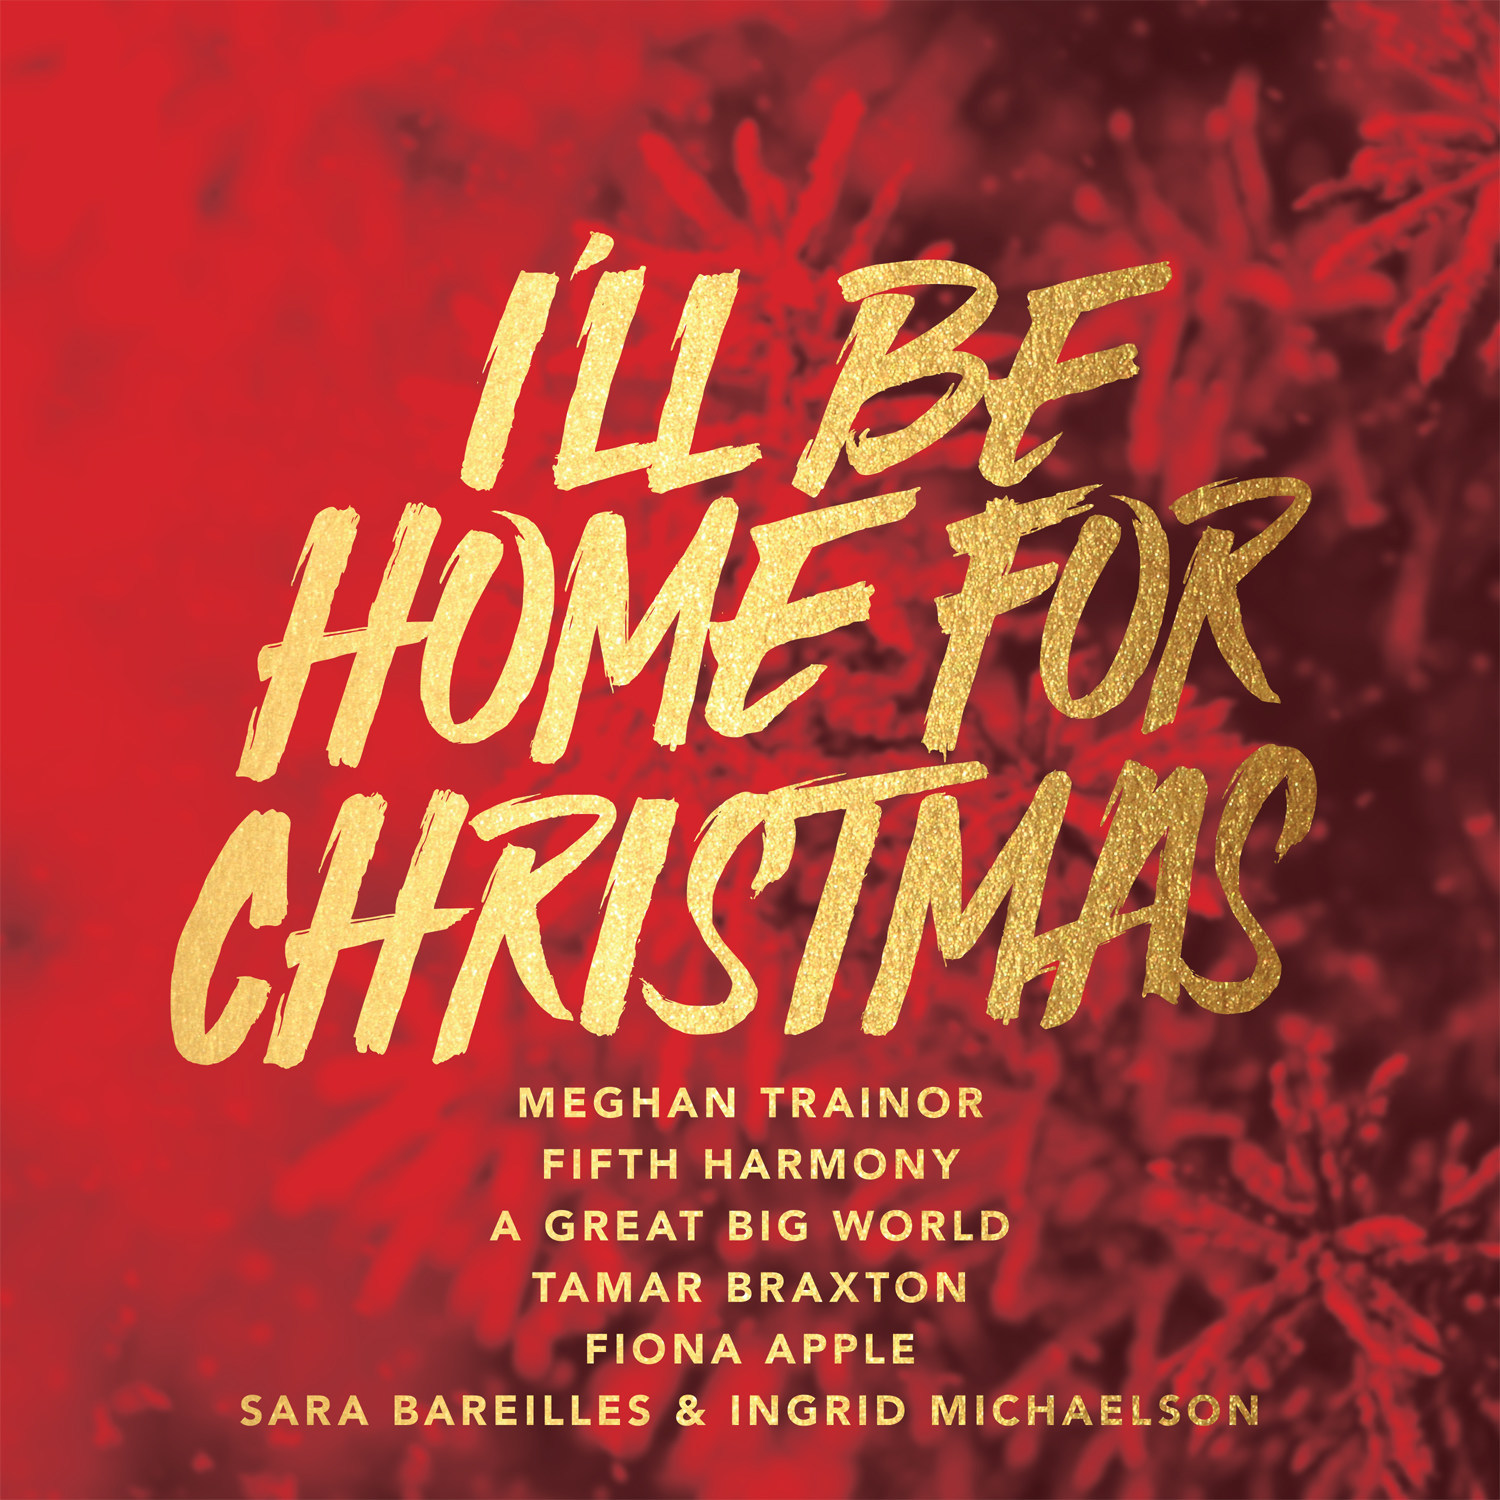 I Ll Be Home For Christmas Quotes: I'll Be Home For Christmas